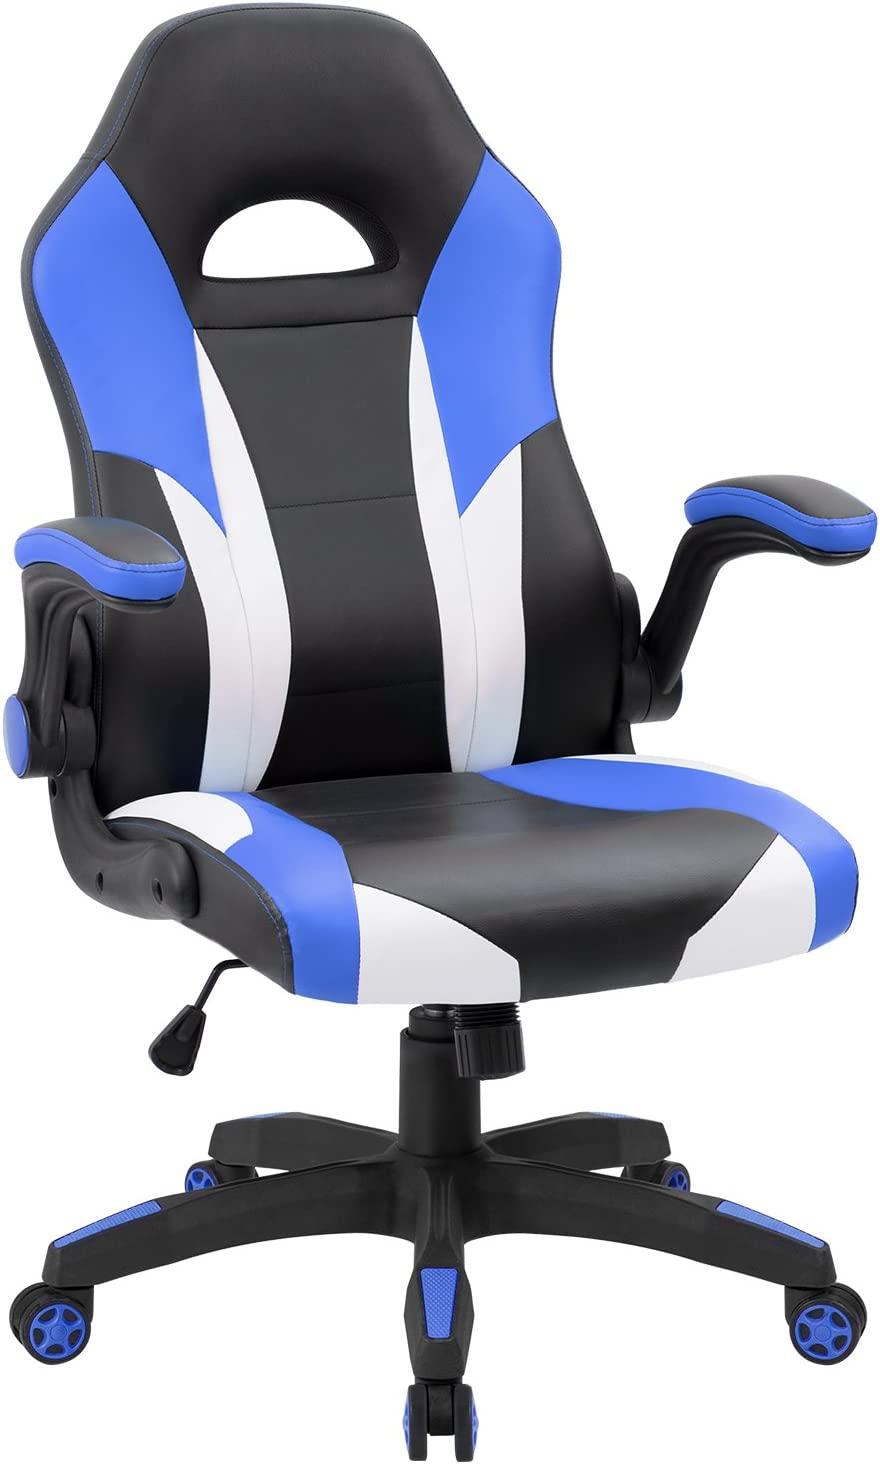 JUMMICO Gaming Chair Ergonomic Leather Racing Computer Chair High Back Adjustable Swivel Executive Office Desk Chair with Flip-Up Armrest Blue